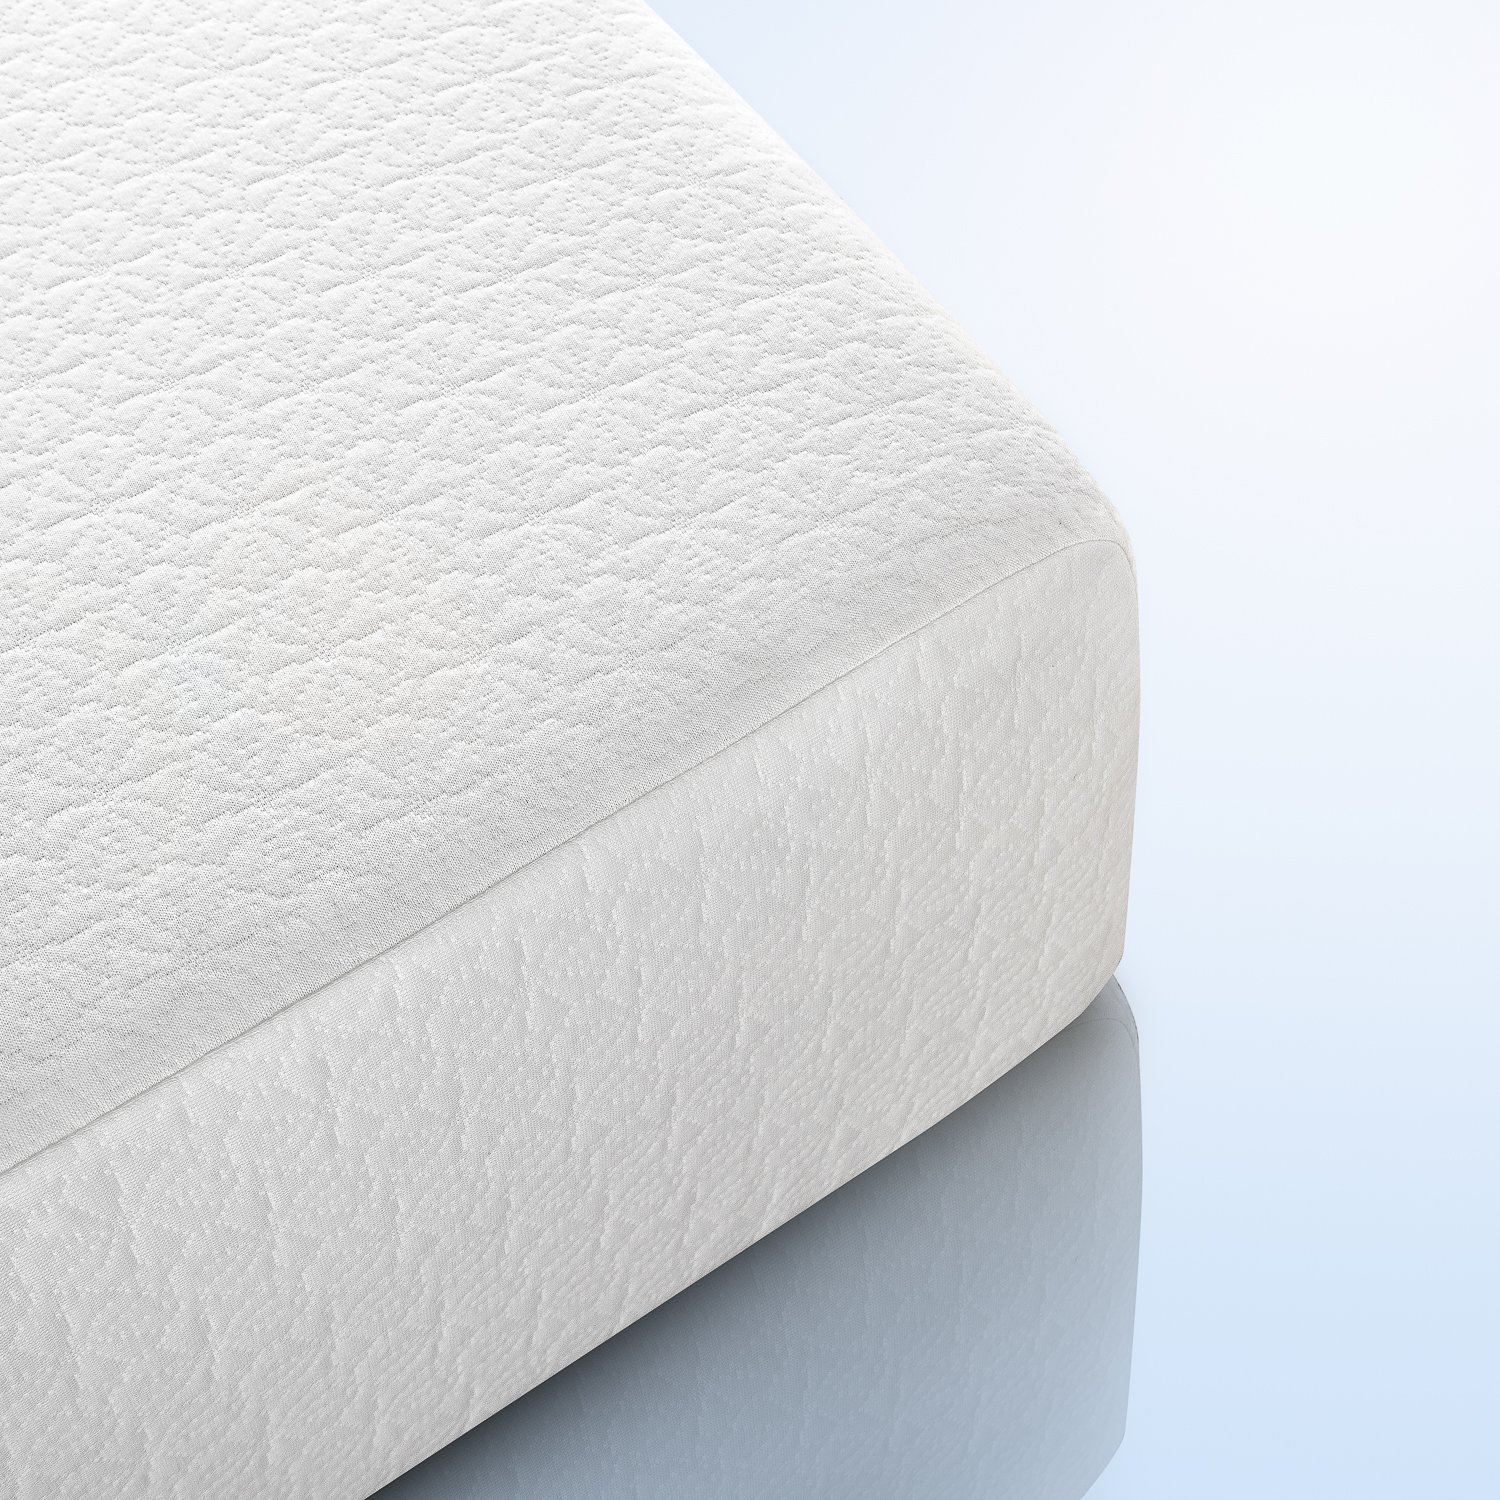 Zinus Ultima Comfort Memory Foam Review